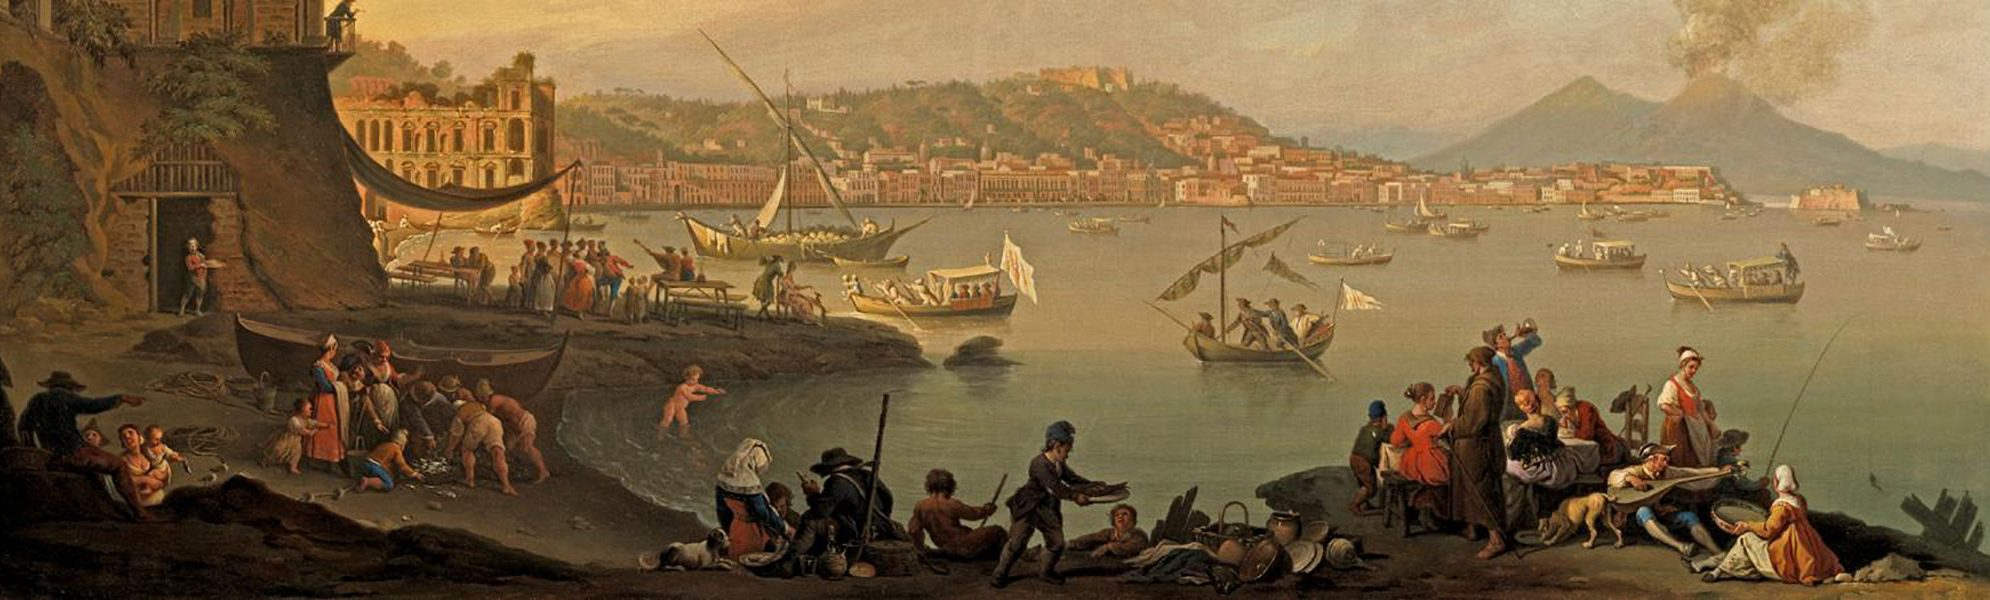 Mozart in Italy 1770